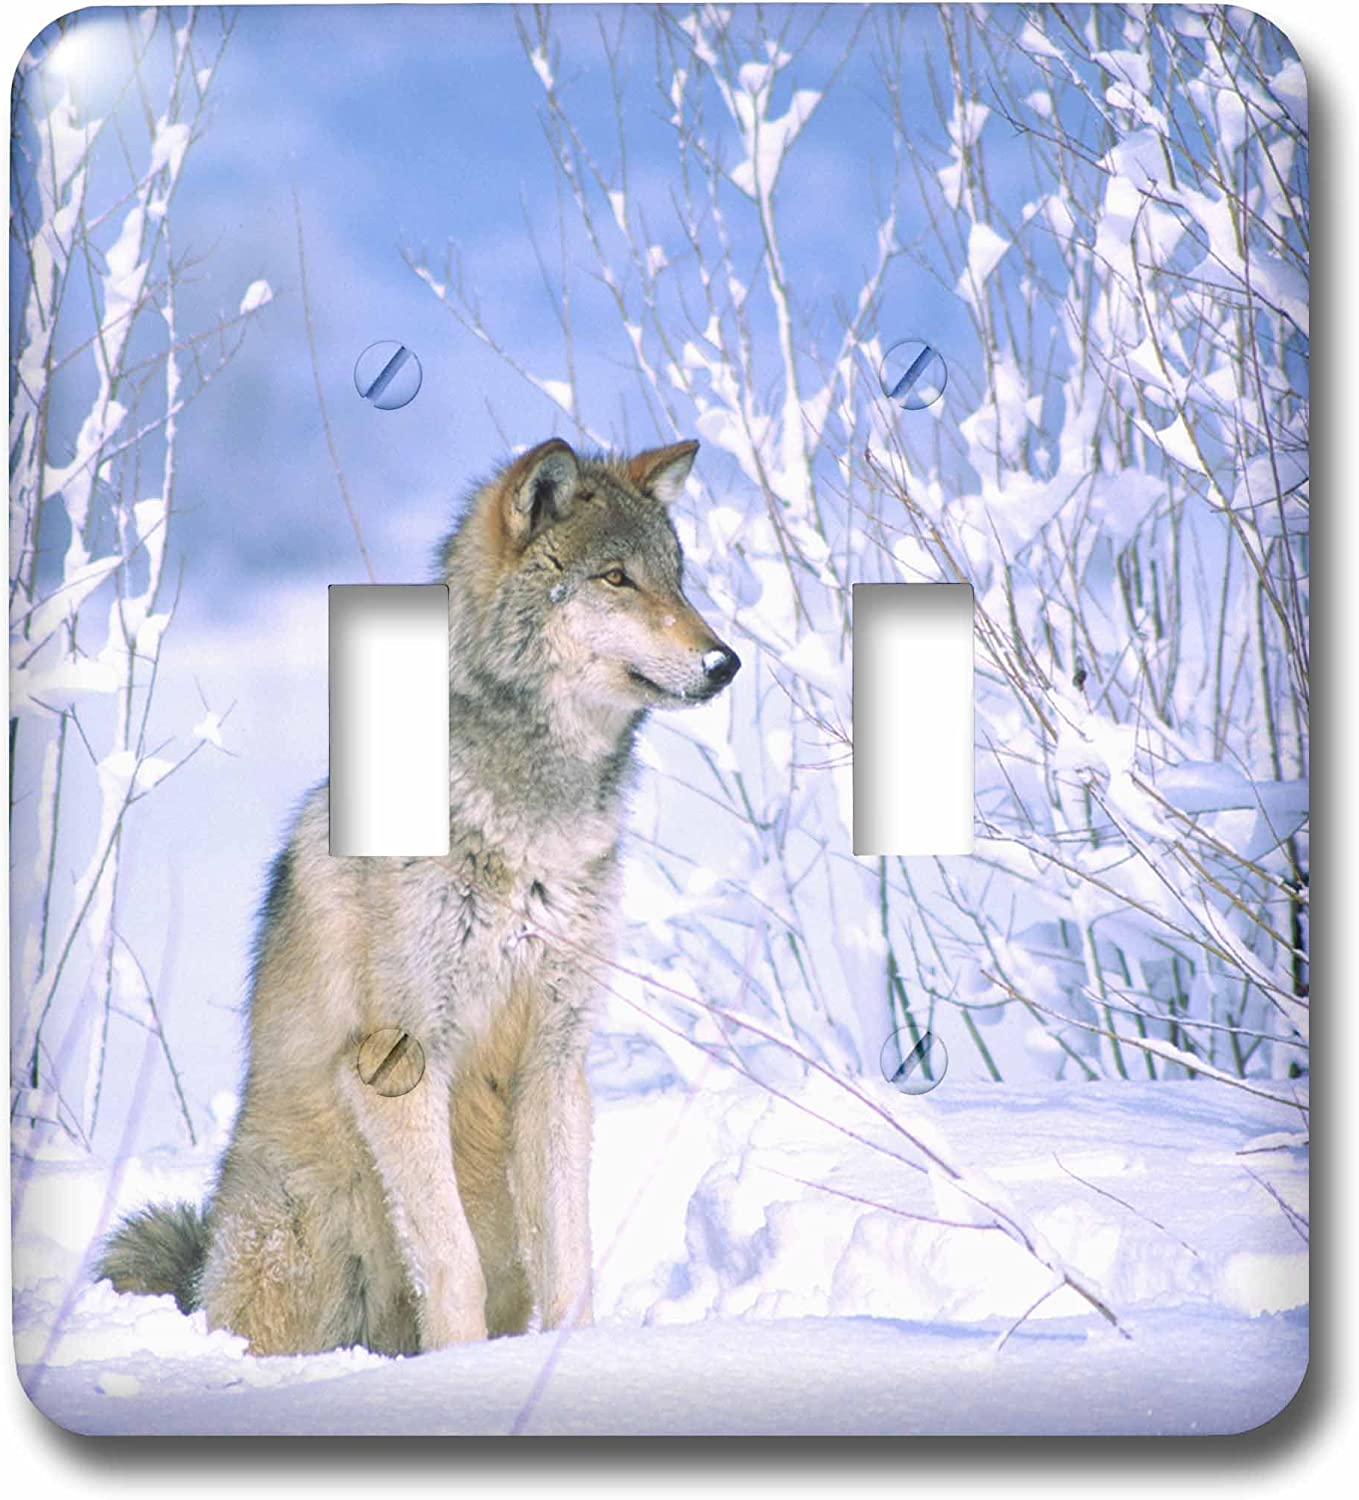 3drose Lsp 83897 2 Timber Wolf Sitting In The Snow Canis Lupus Na02 Dno0317 David Northcott Light Switch Cover Multi Switch Plates Amazon Com